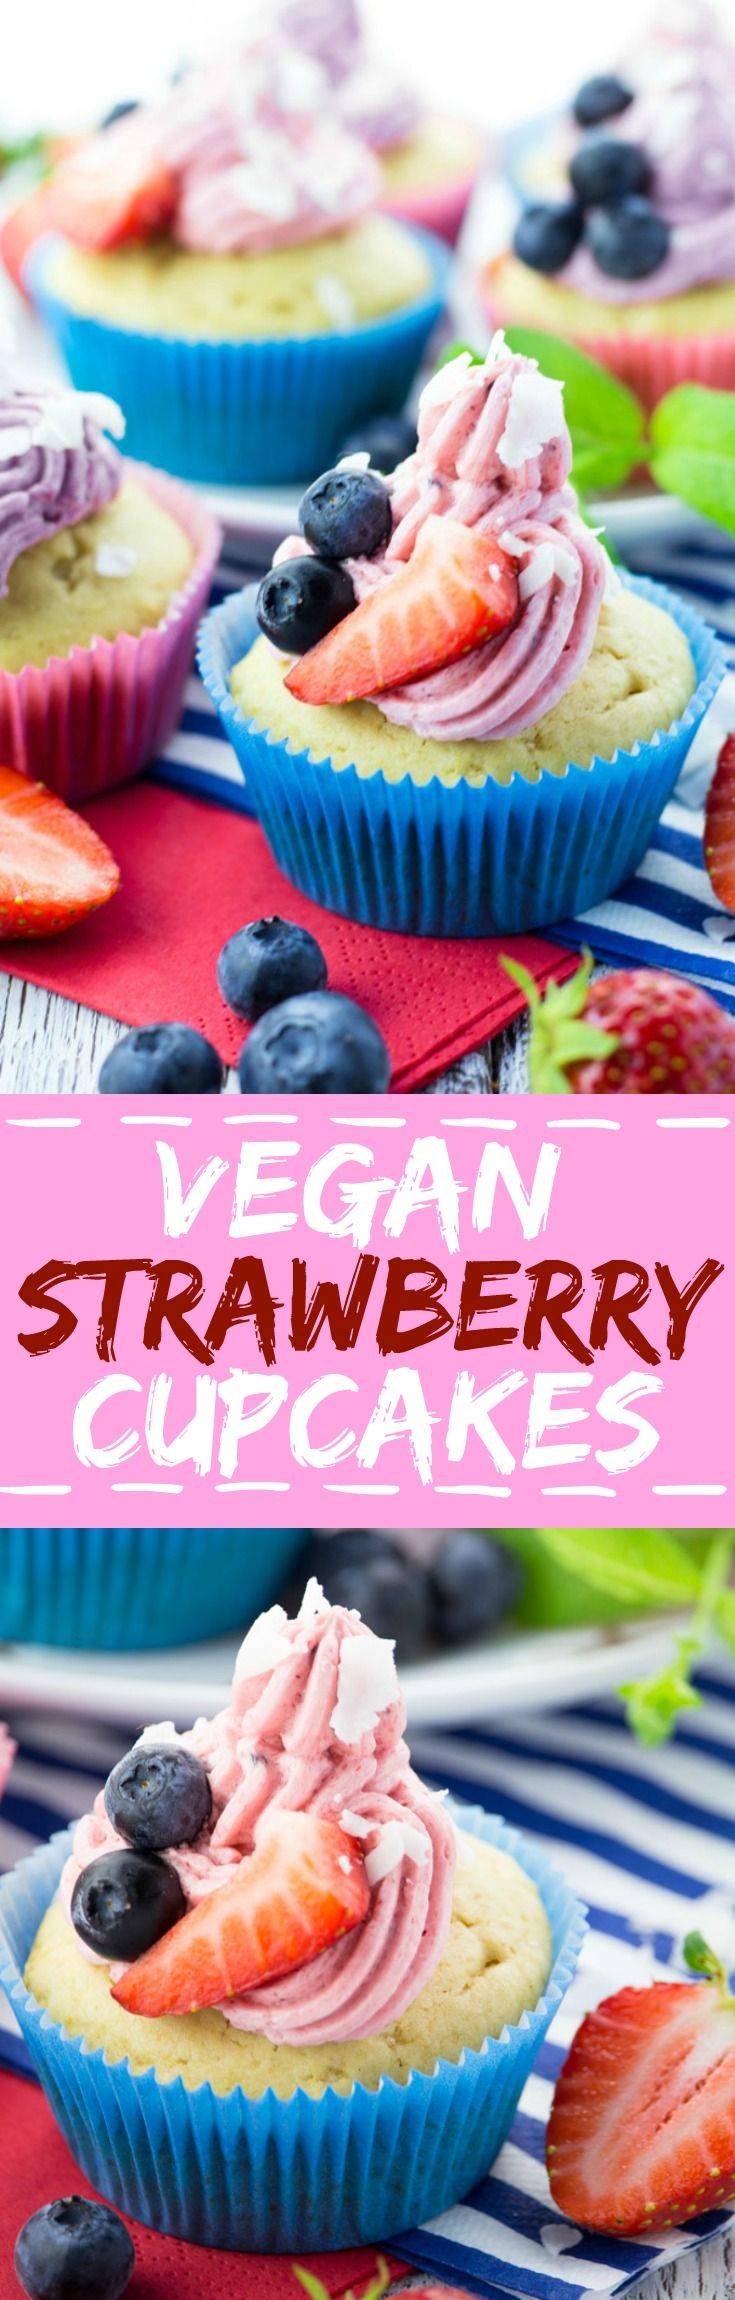 These vegan strawberry cupcakes with blueberries and coconut flakes are not only perfect for 4th of July but also for girls birthday parties!